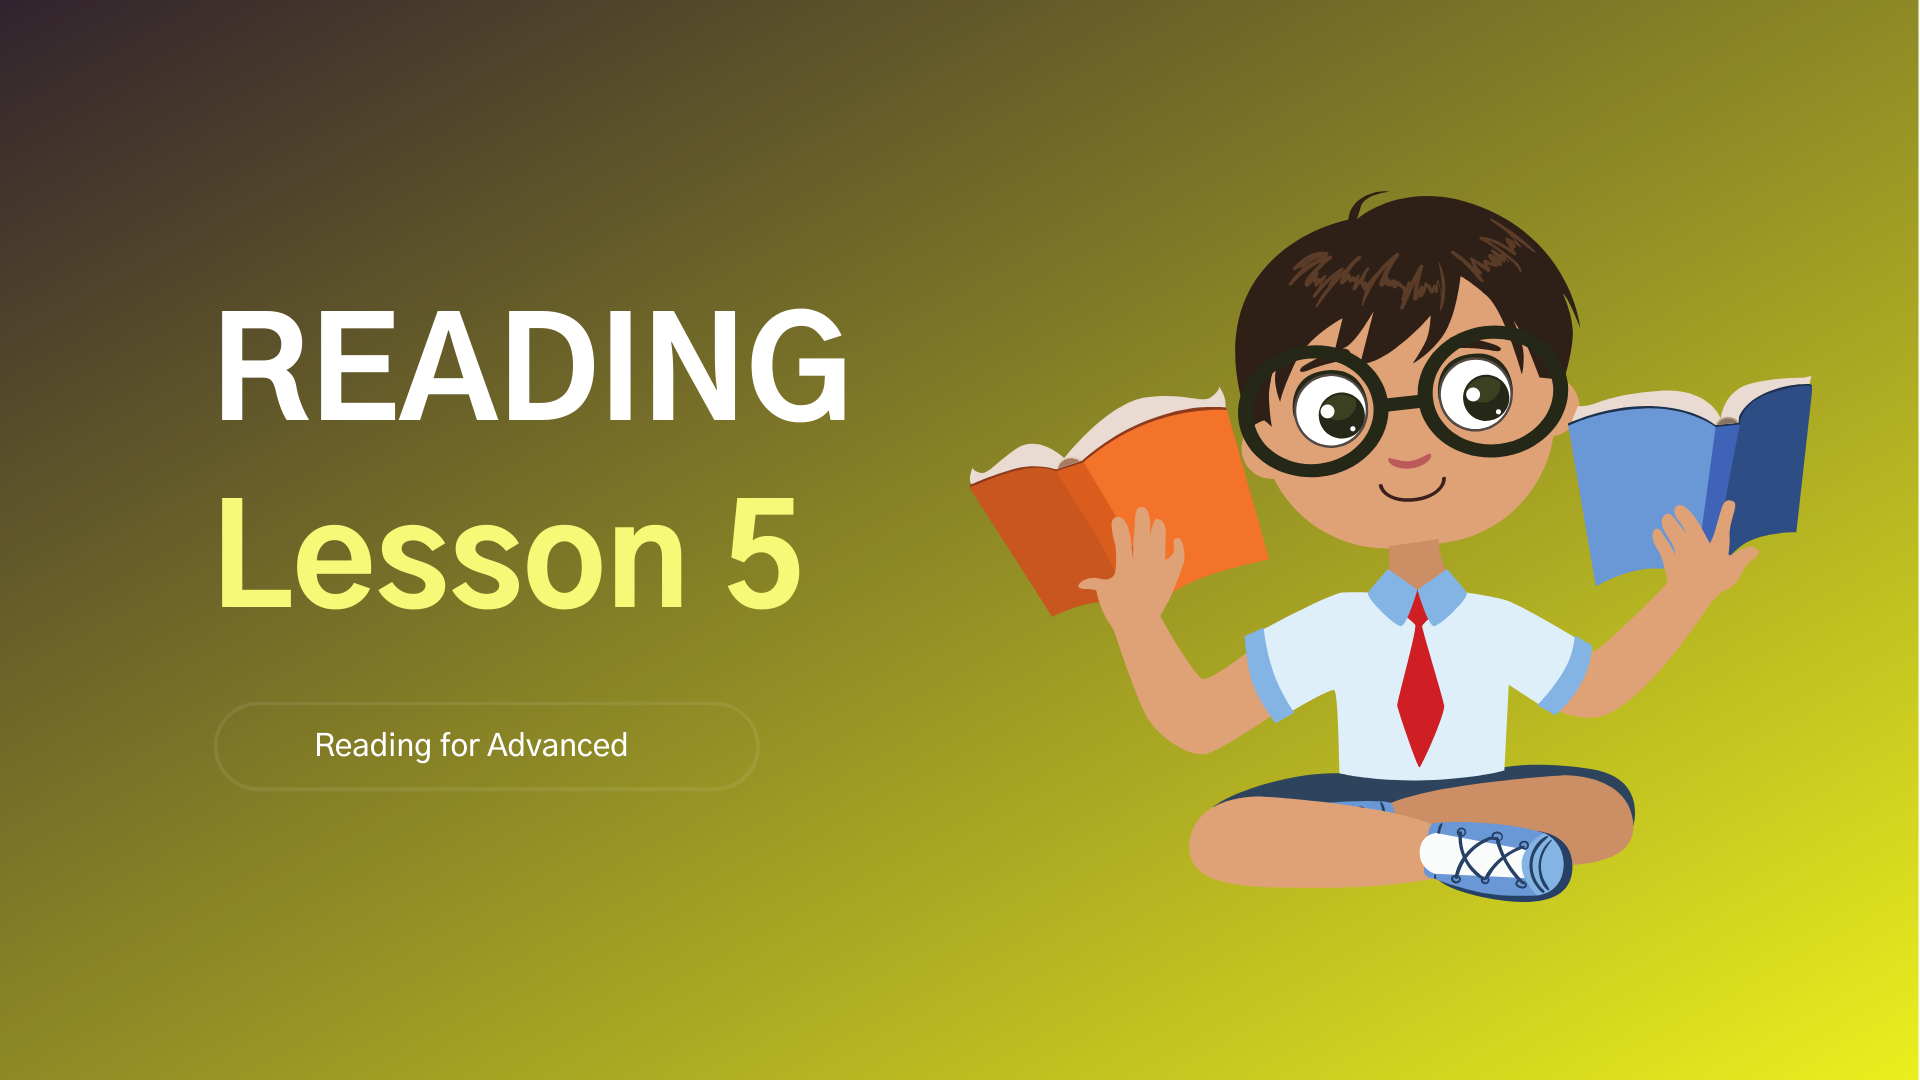 Lesson 5 - Reading for Advanced